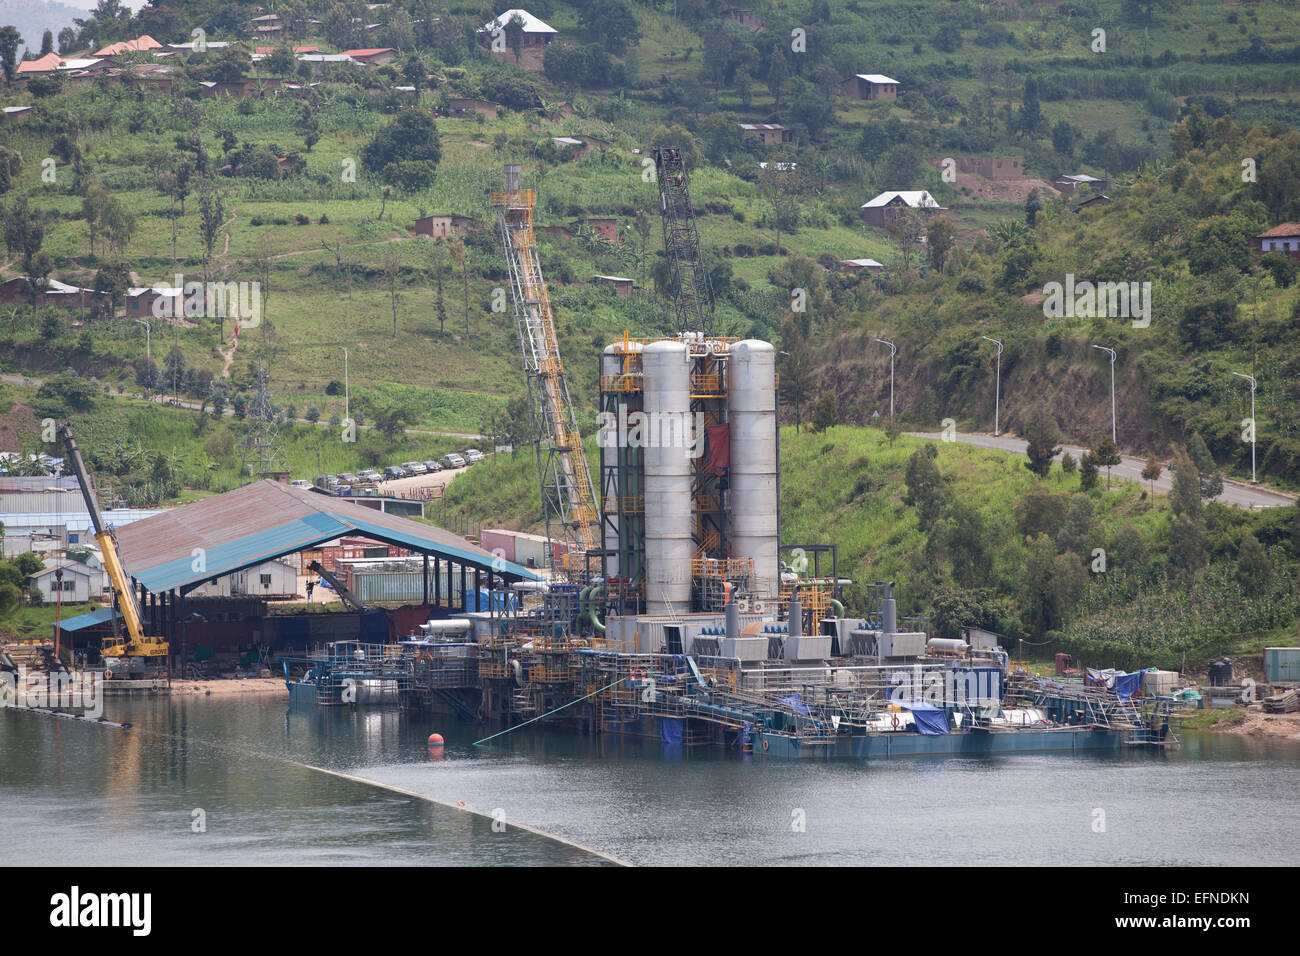 Kivuwatt biogas plant under construction on the edge of Lake Kivu, Rwanda - Stock Image